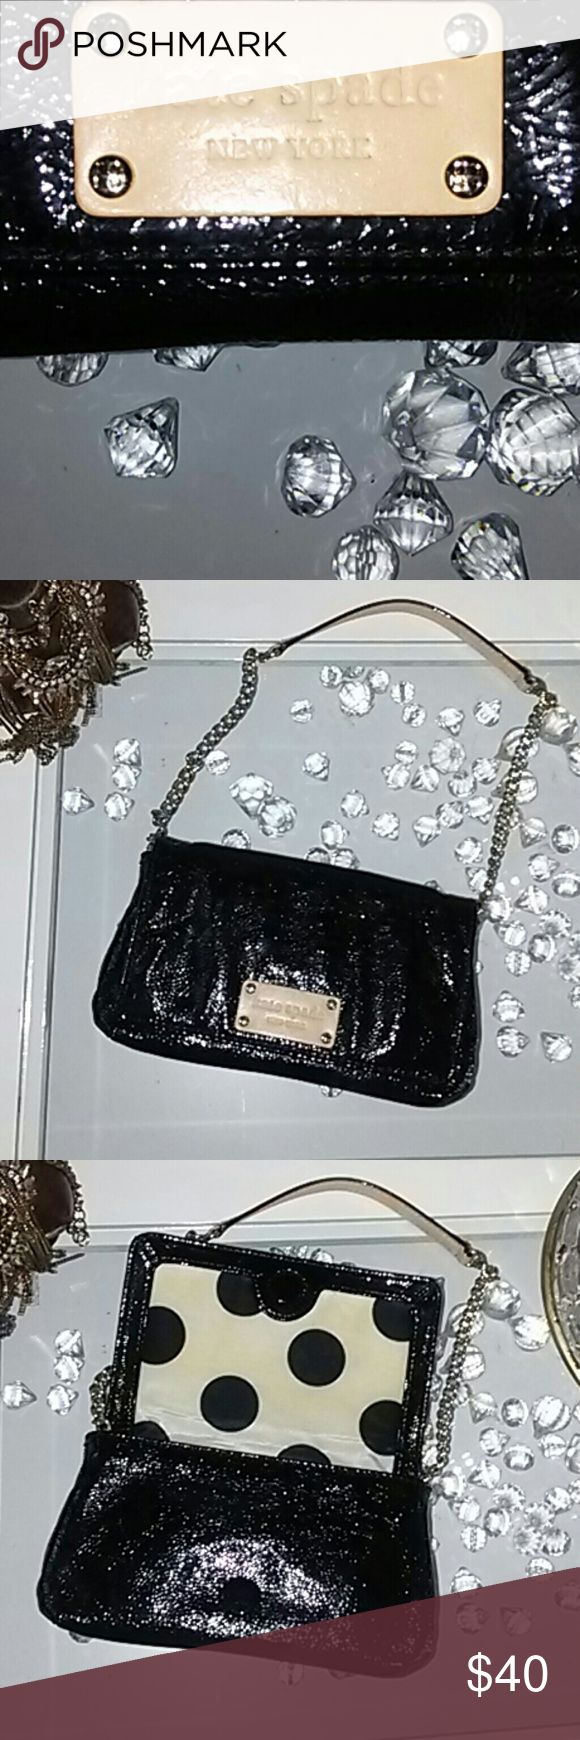 Kate Spade Patent Leather Evening Bag Kate Spade Evening Bag kate spade Bags Clutches & Wristlets